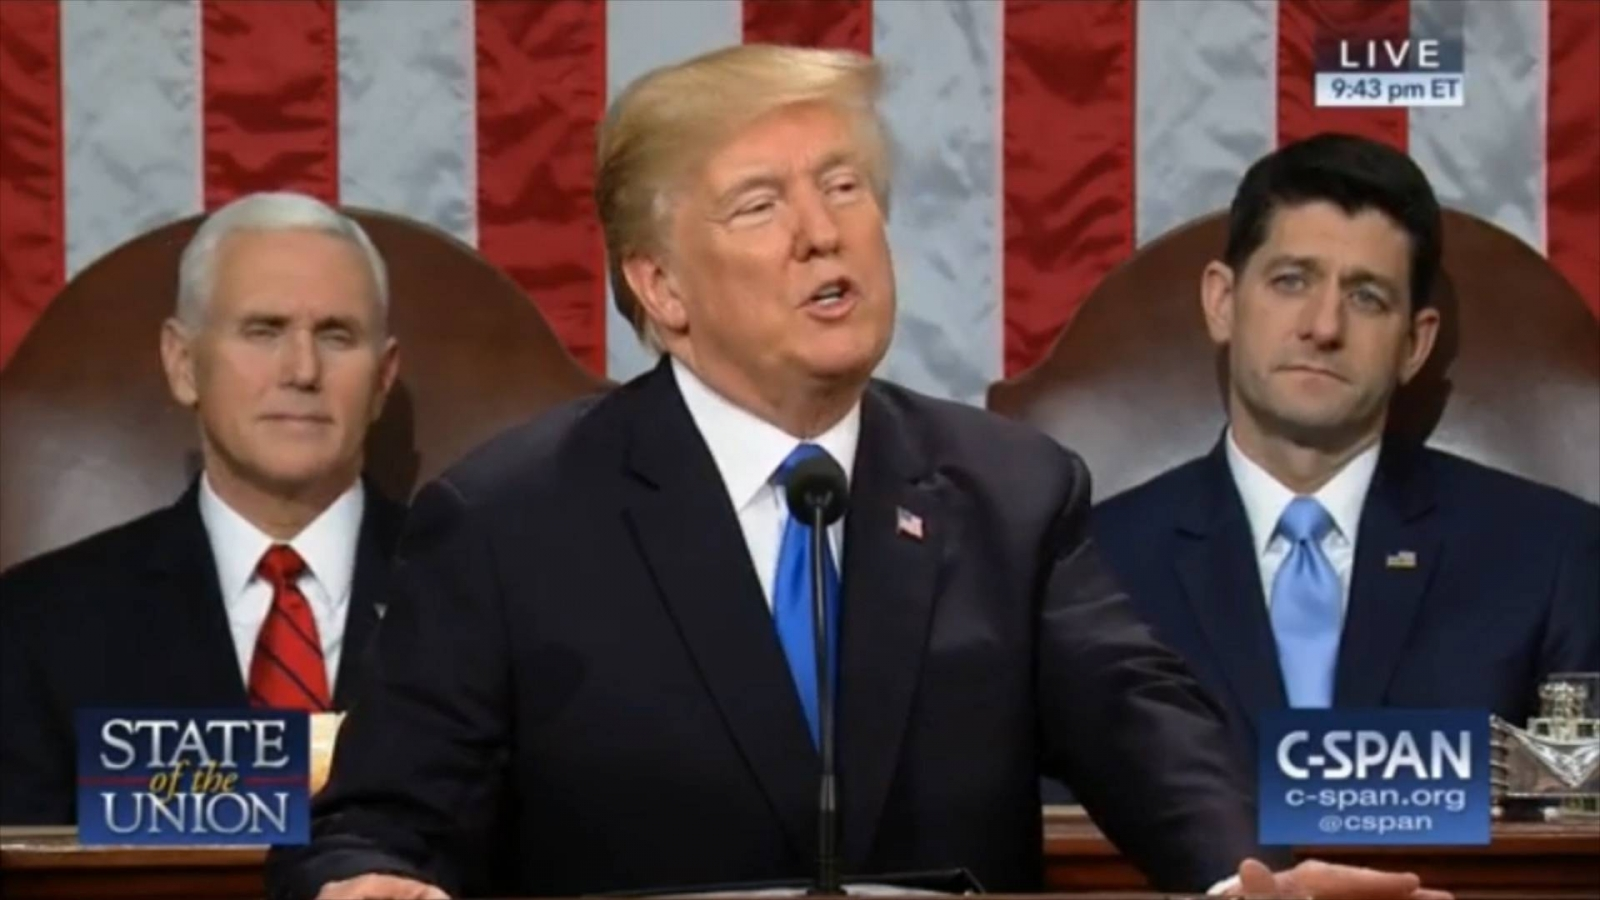 president-trump-calls-for-unity-in-state-of-the-union-speech